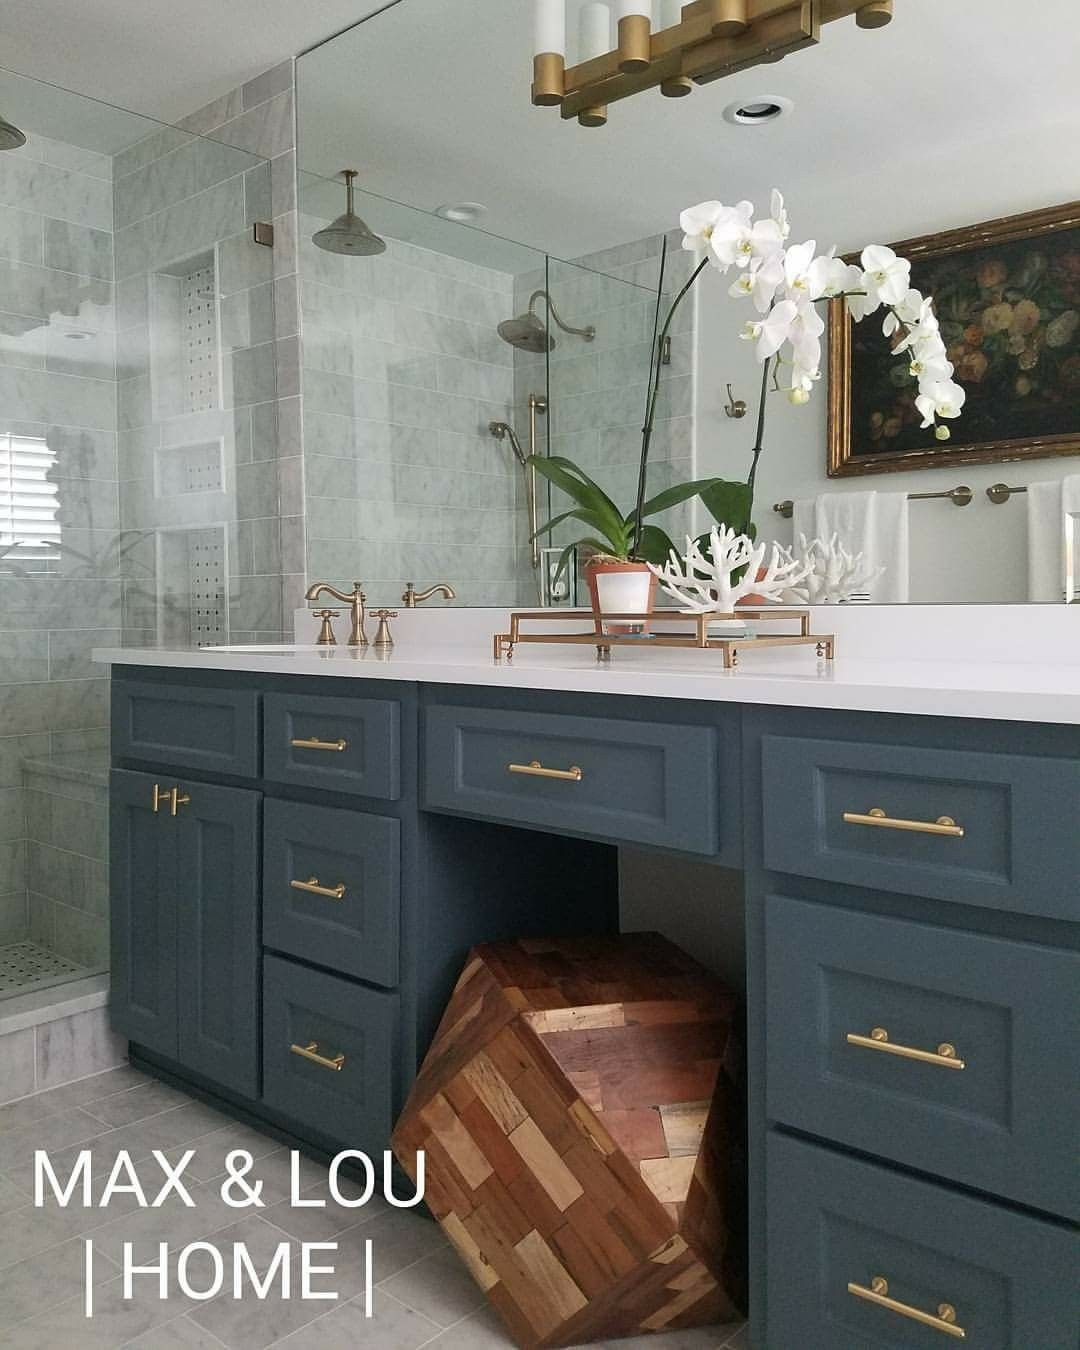 Sherwin Williams Mink Bathroom: Sherwin Williams, Marble Tile, Master Bathroom, Slate Blue Vanity, Brass Hardware, Max & Lou